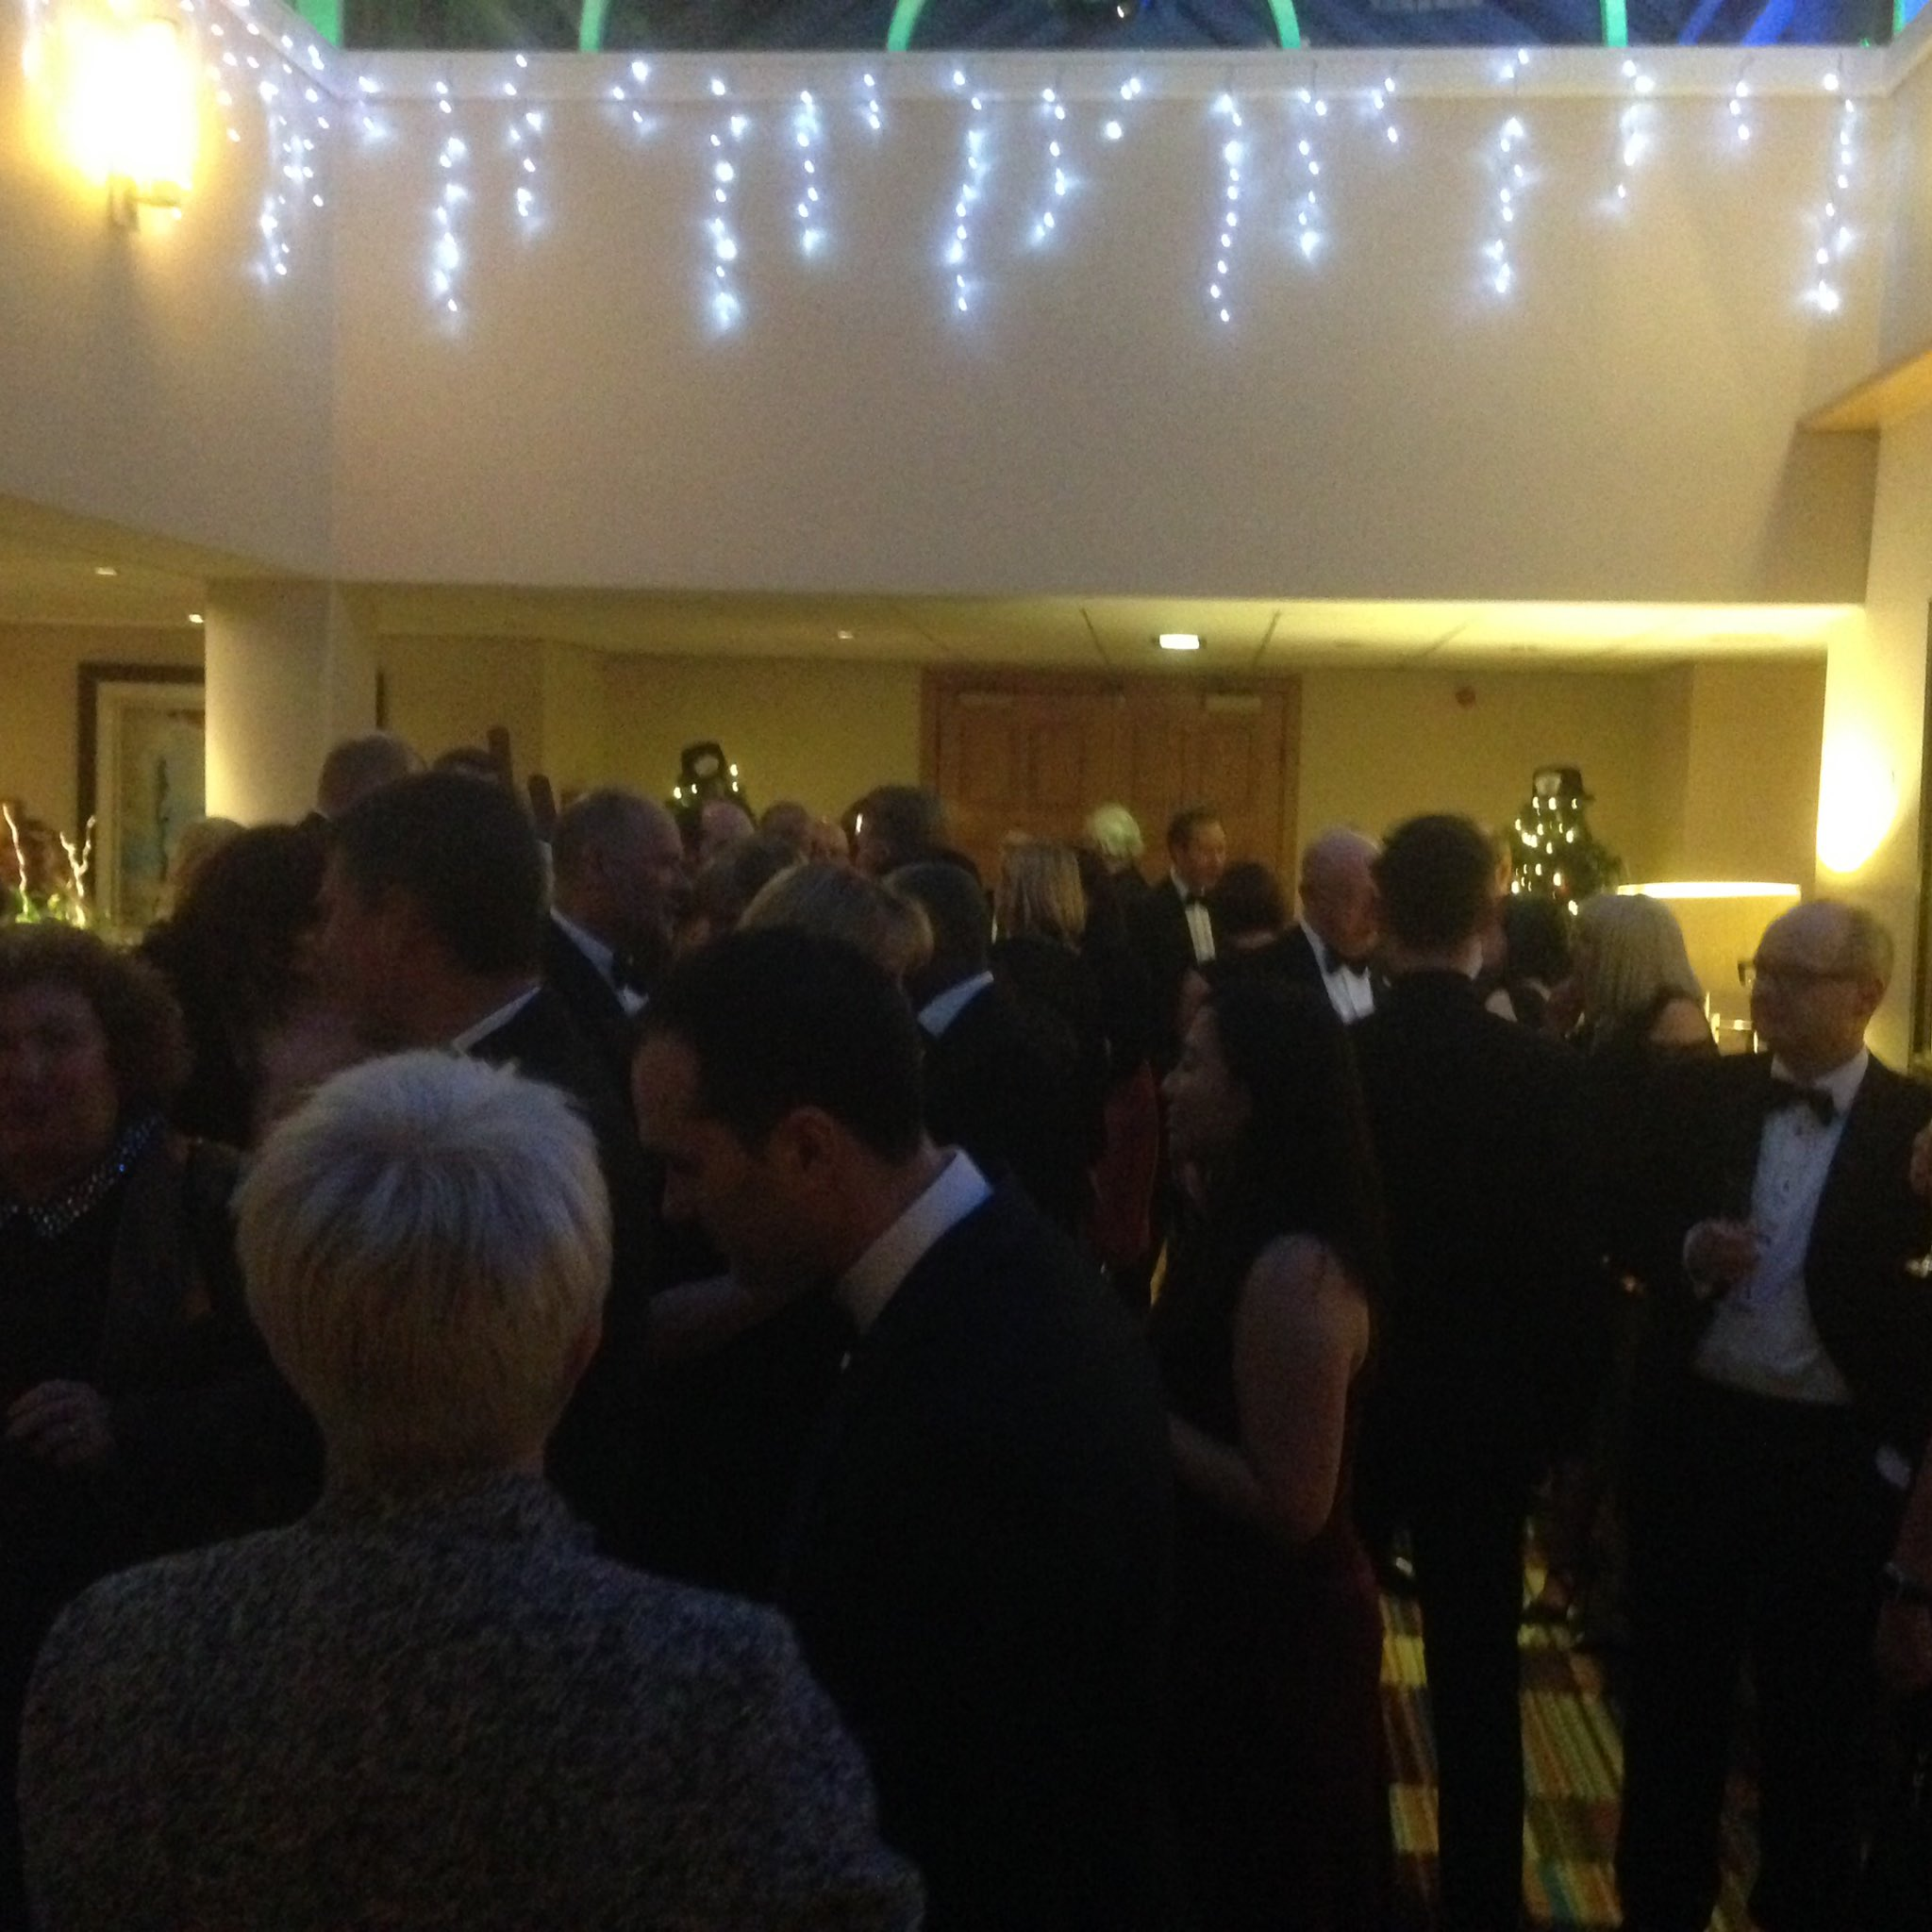 Fantastic to see so many great friends and colleagues out to celebrate the #inetworkawards https://t.co/e2aF2ZoaB9